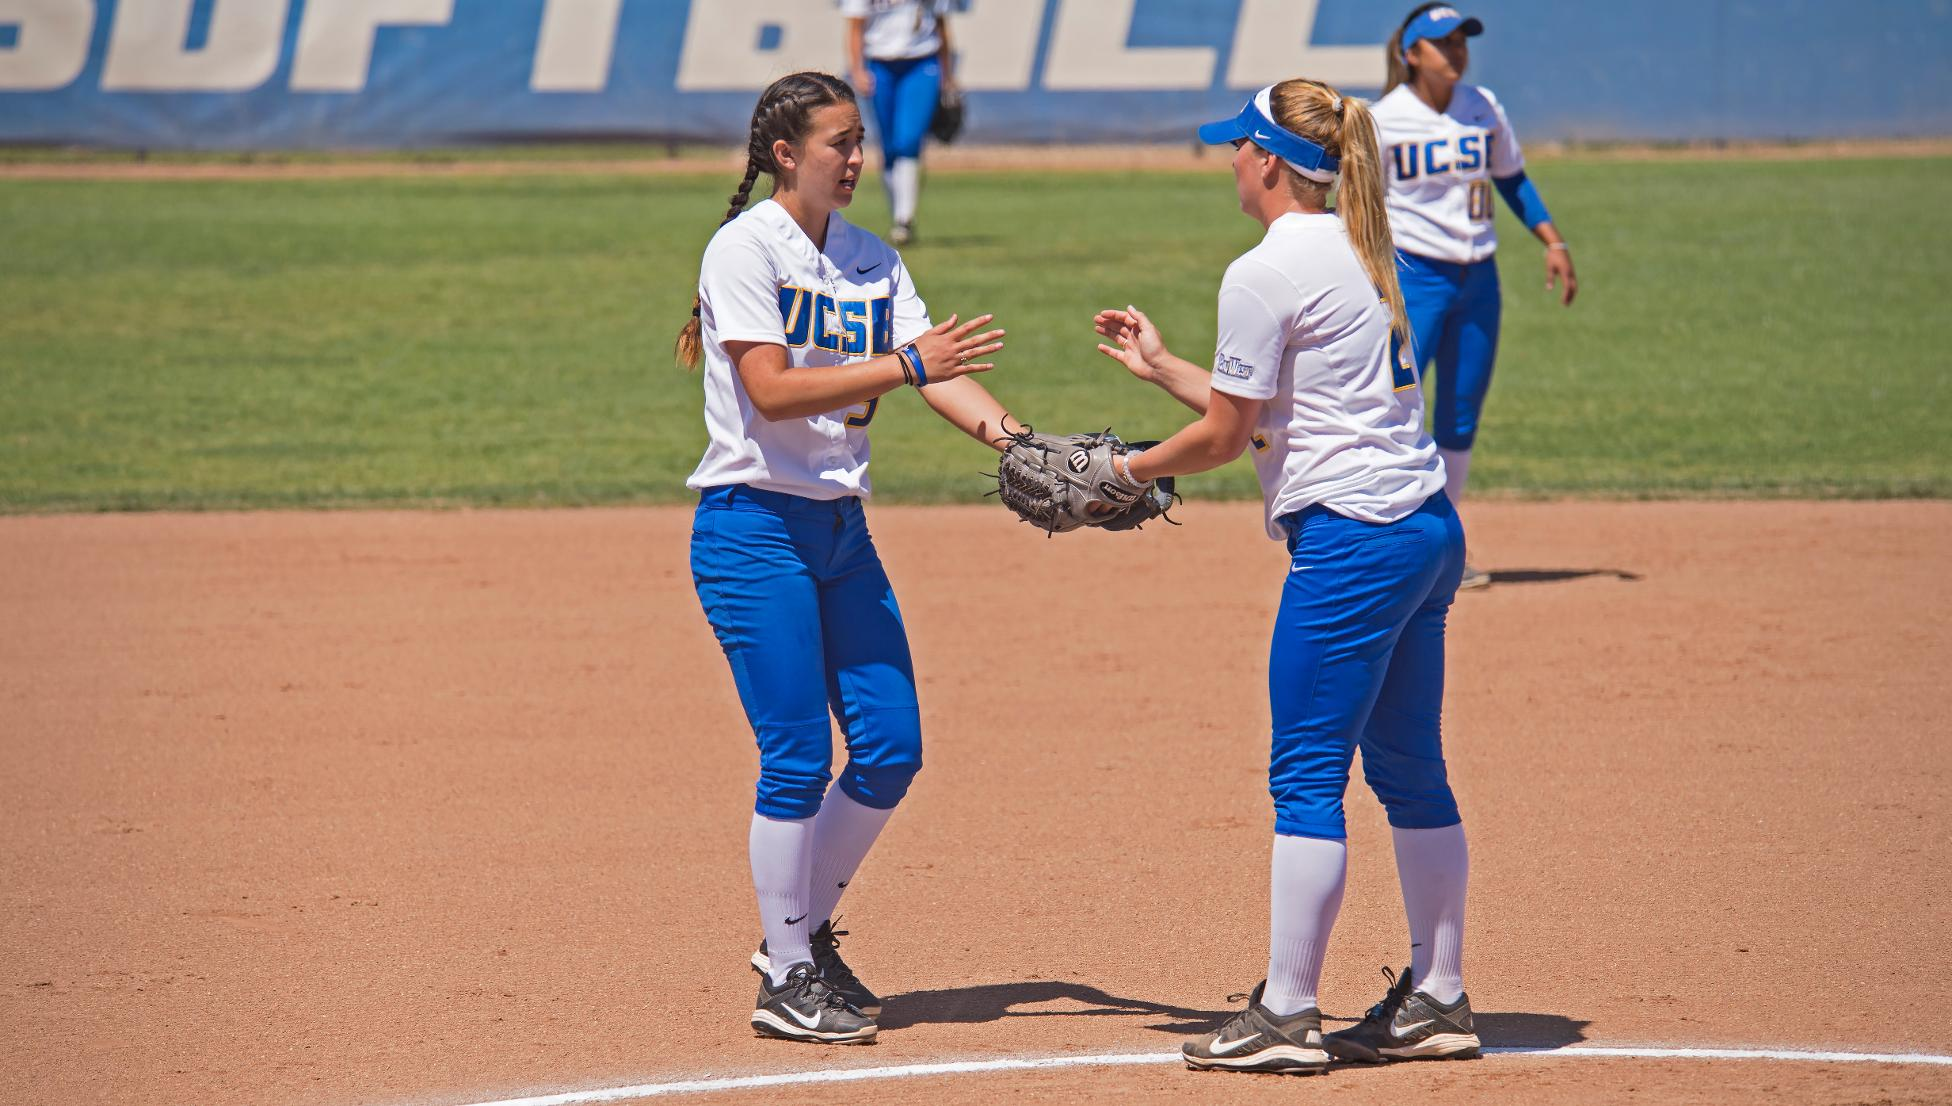 From left to right: Emily Brucelas, Ashley Ludlow (Photo by Eric Isaacs)